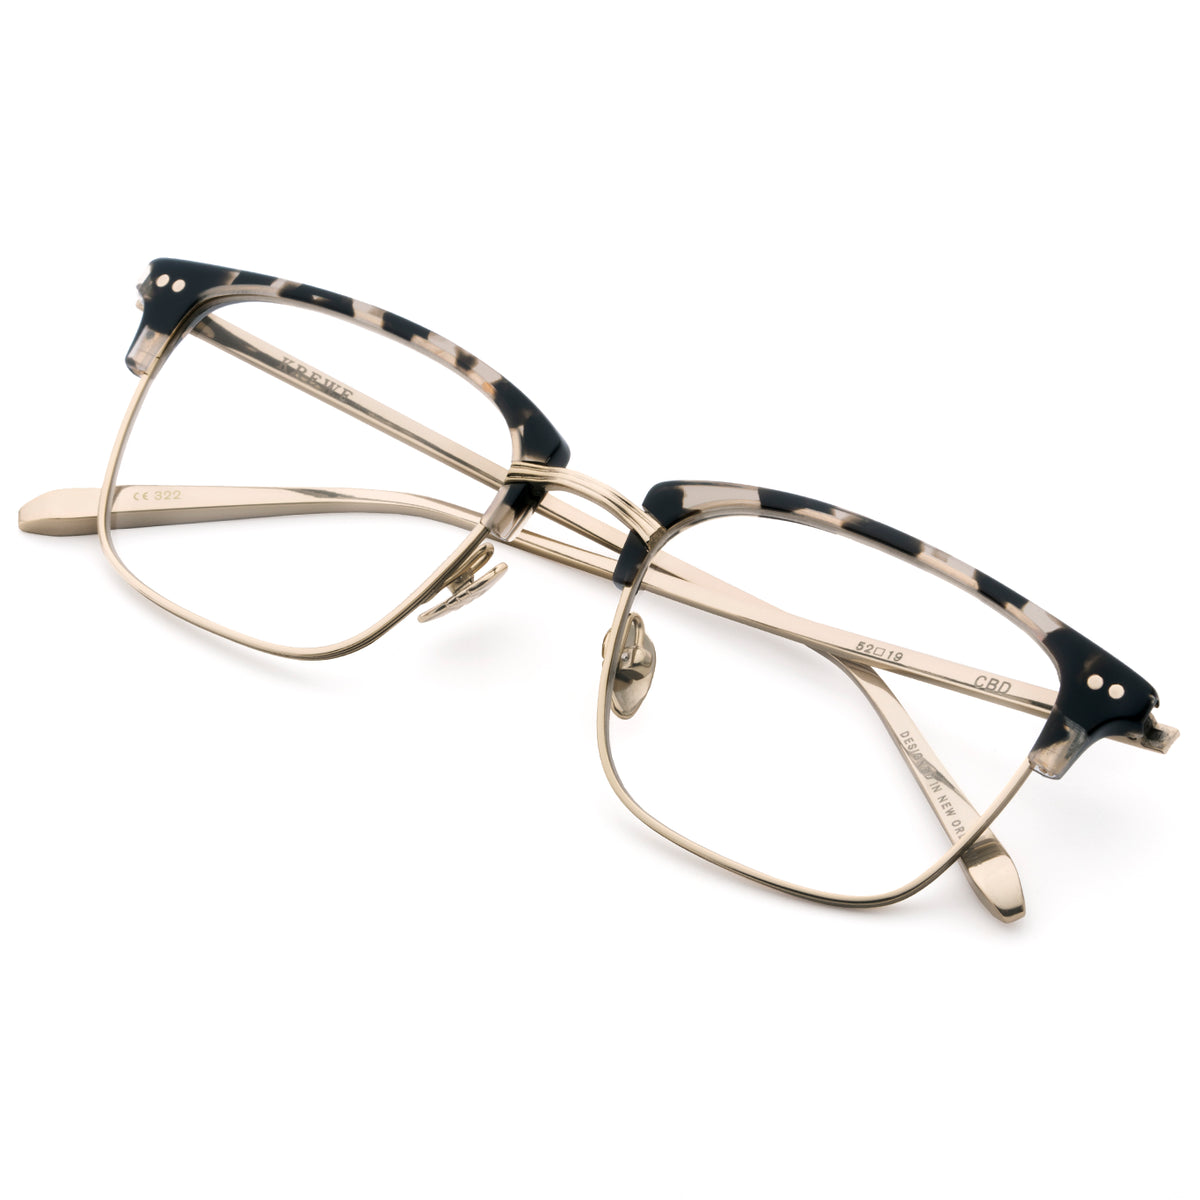 CBD OPTICAL | Charcoal - Handcrafted Acetate Eyewear